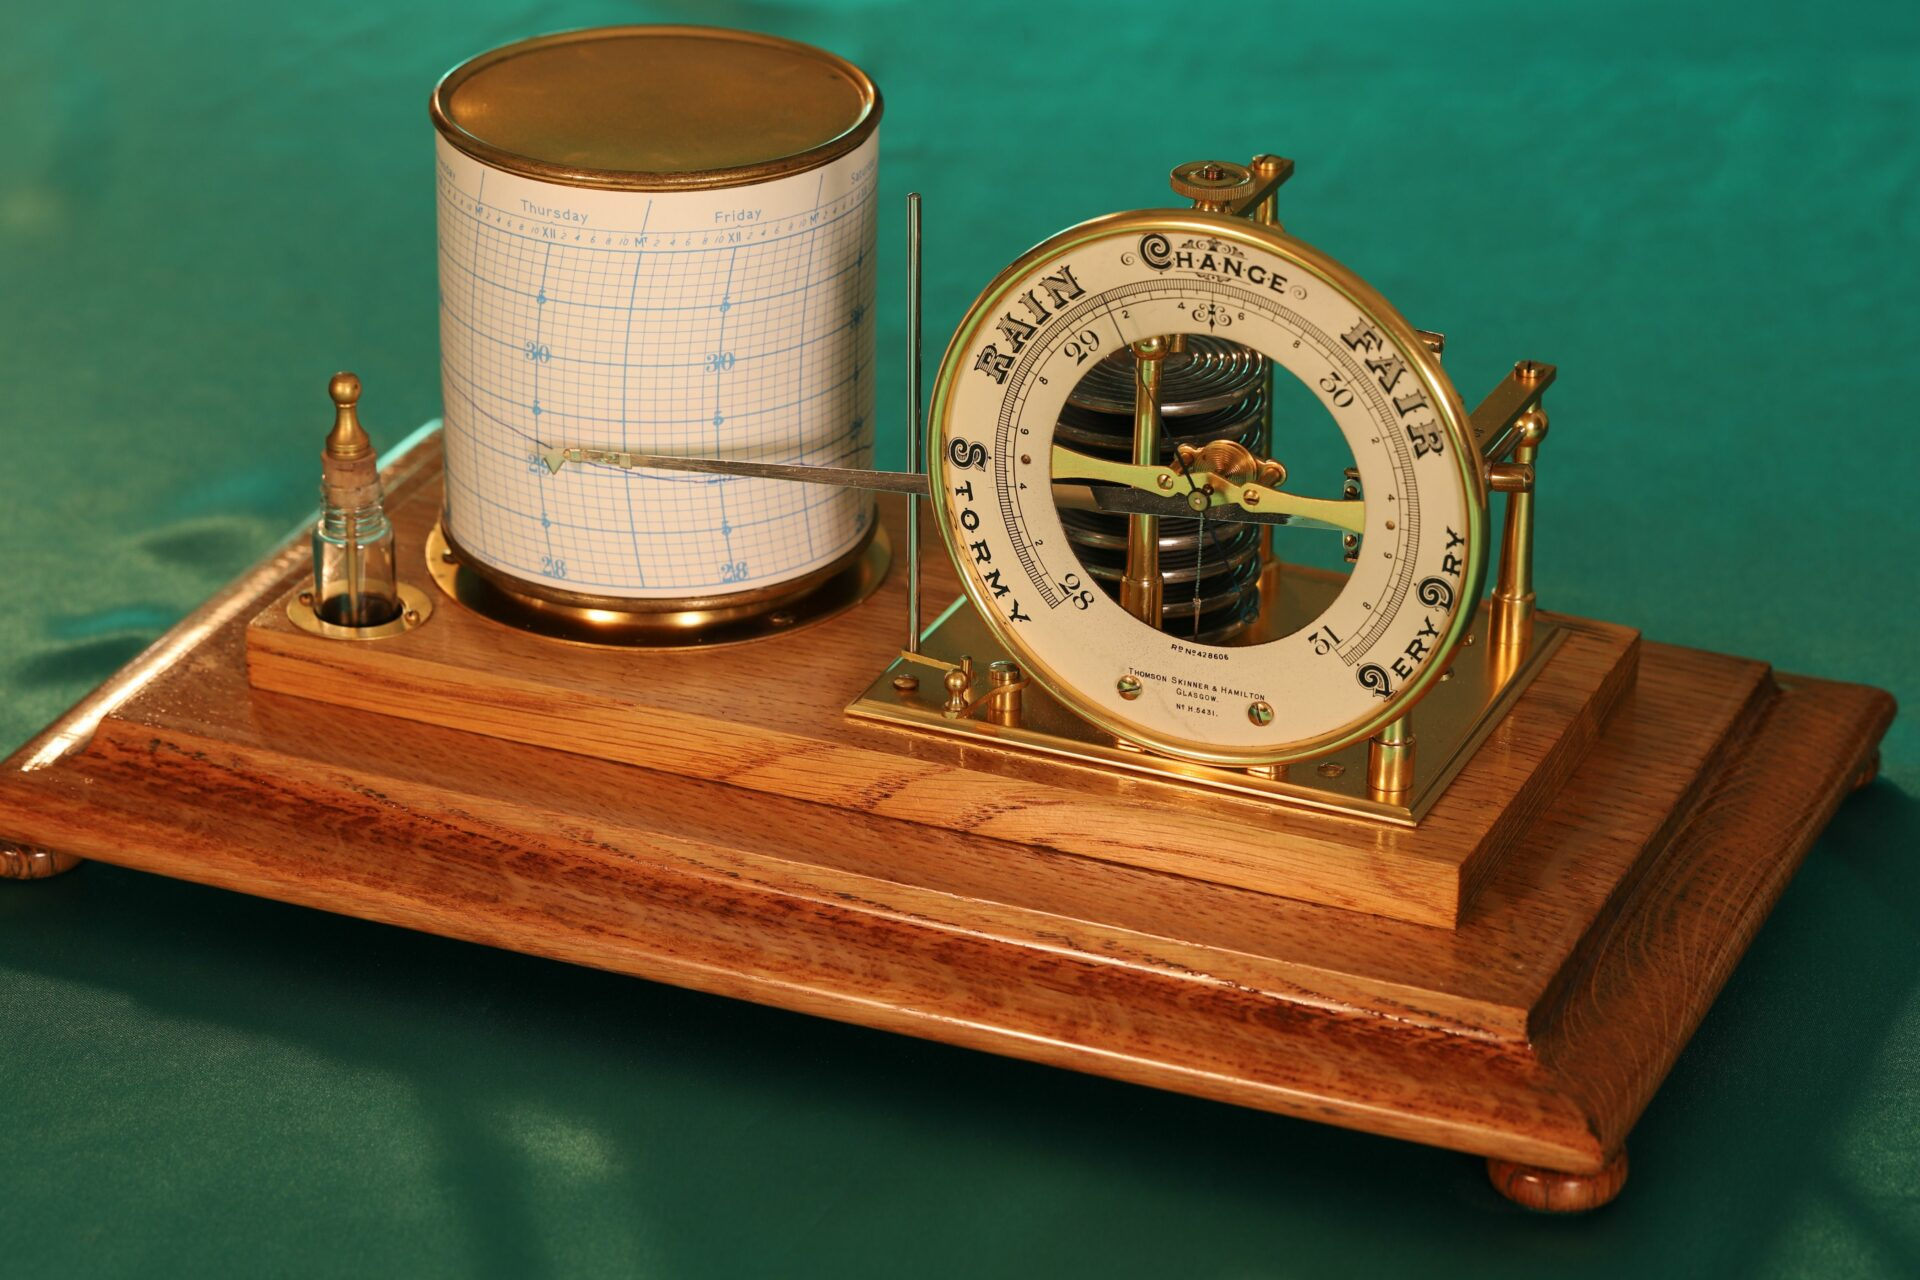 Image of Short & Mason Tycos Drum Barograph with Dial No 5431 c1930 with case lid removed and taken from above right